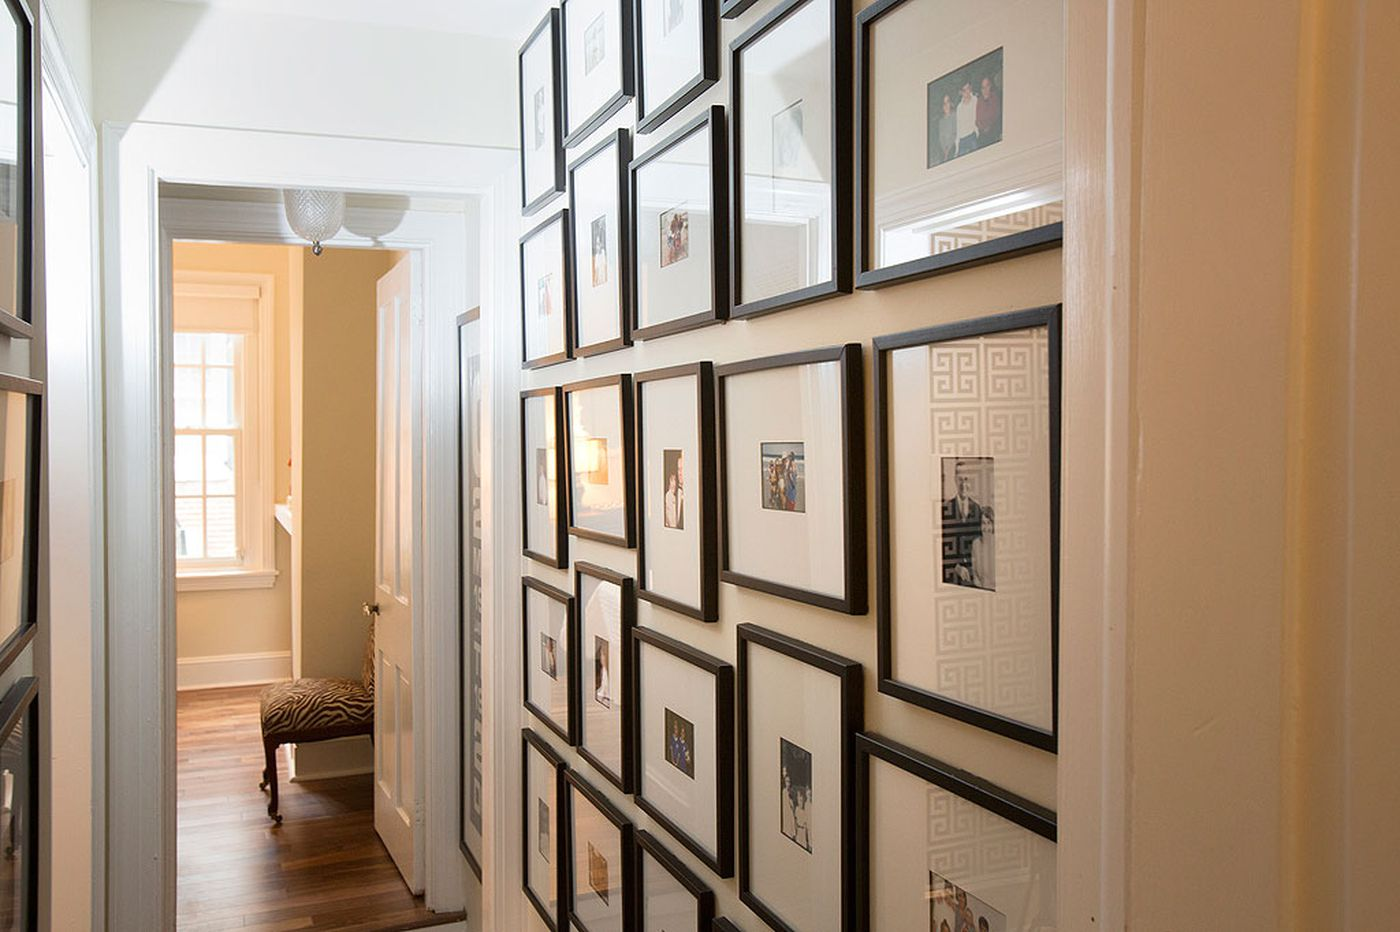 Ask Jennifer Adams: Should your picture frames match the art or your decor?